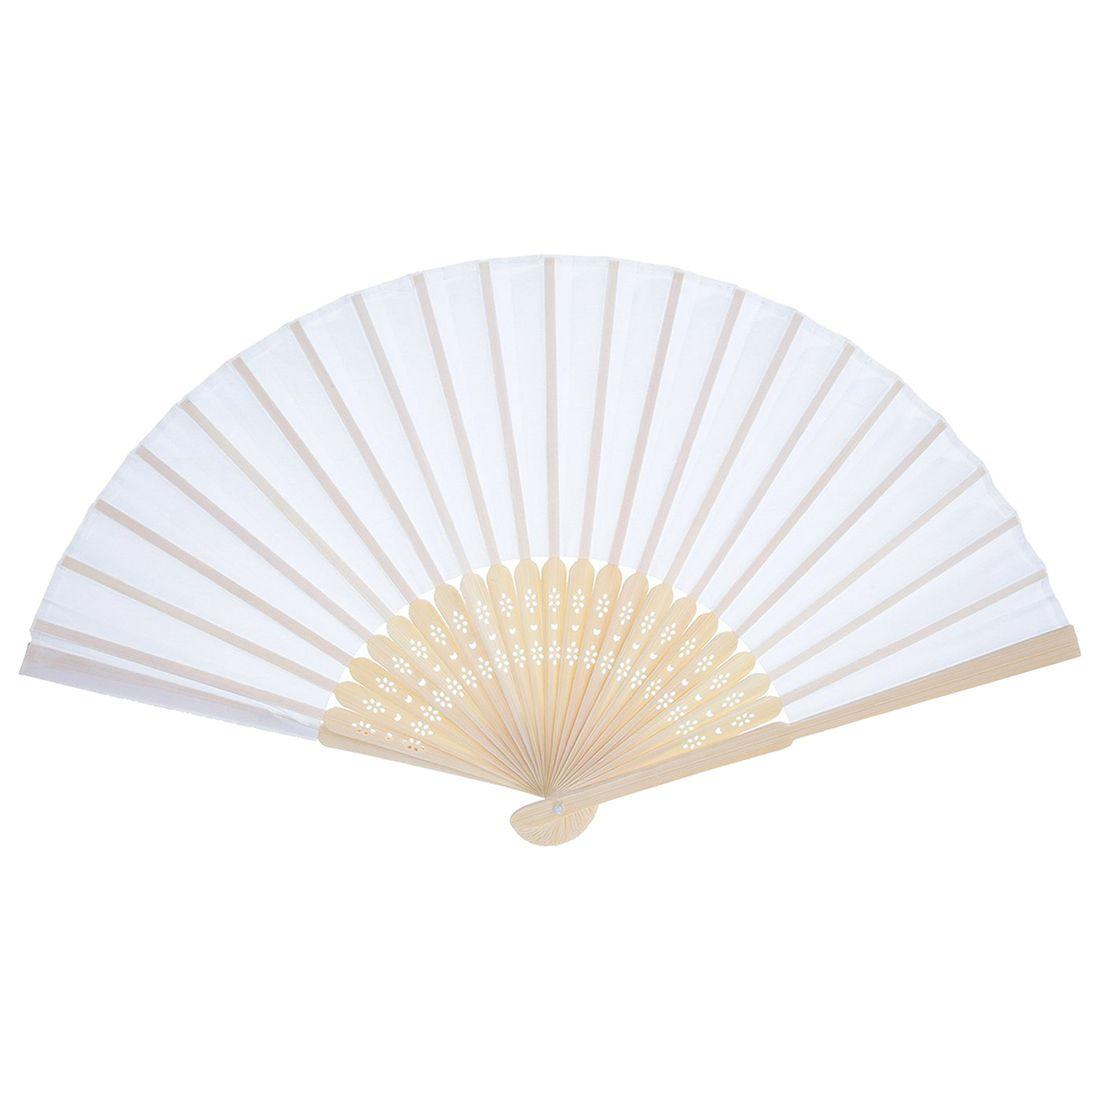 Practical Boutique 12 Pack Hand Held Fans White Silk Bamboo Folding ...